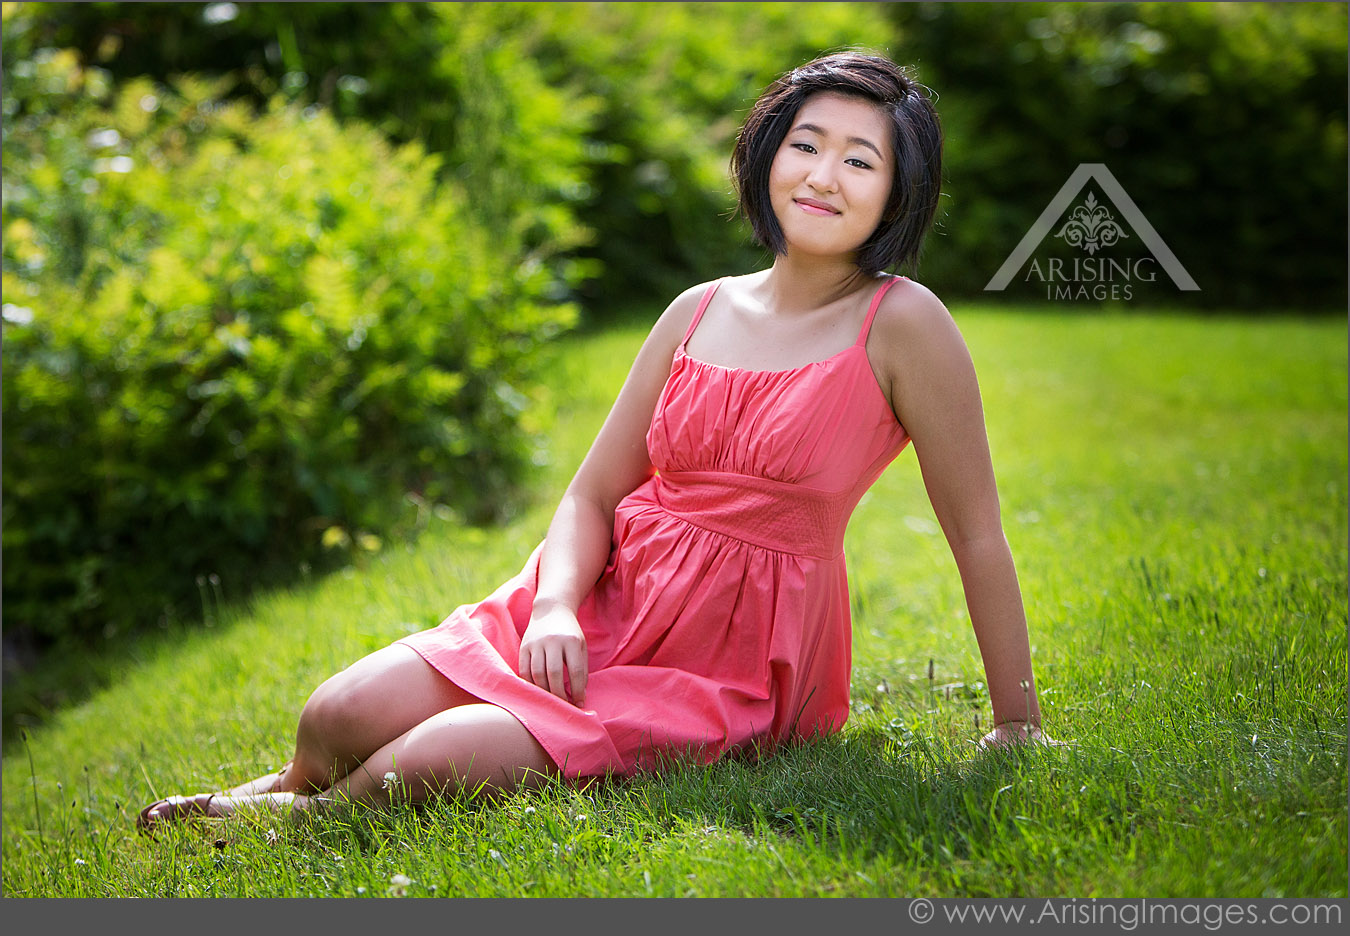 Senior pictures taken in grass